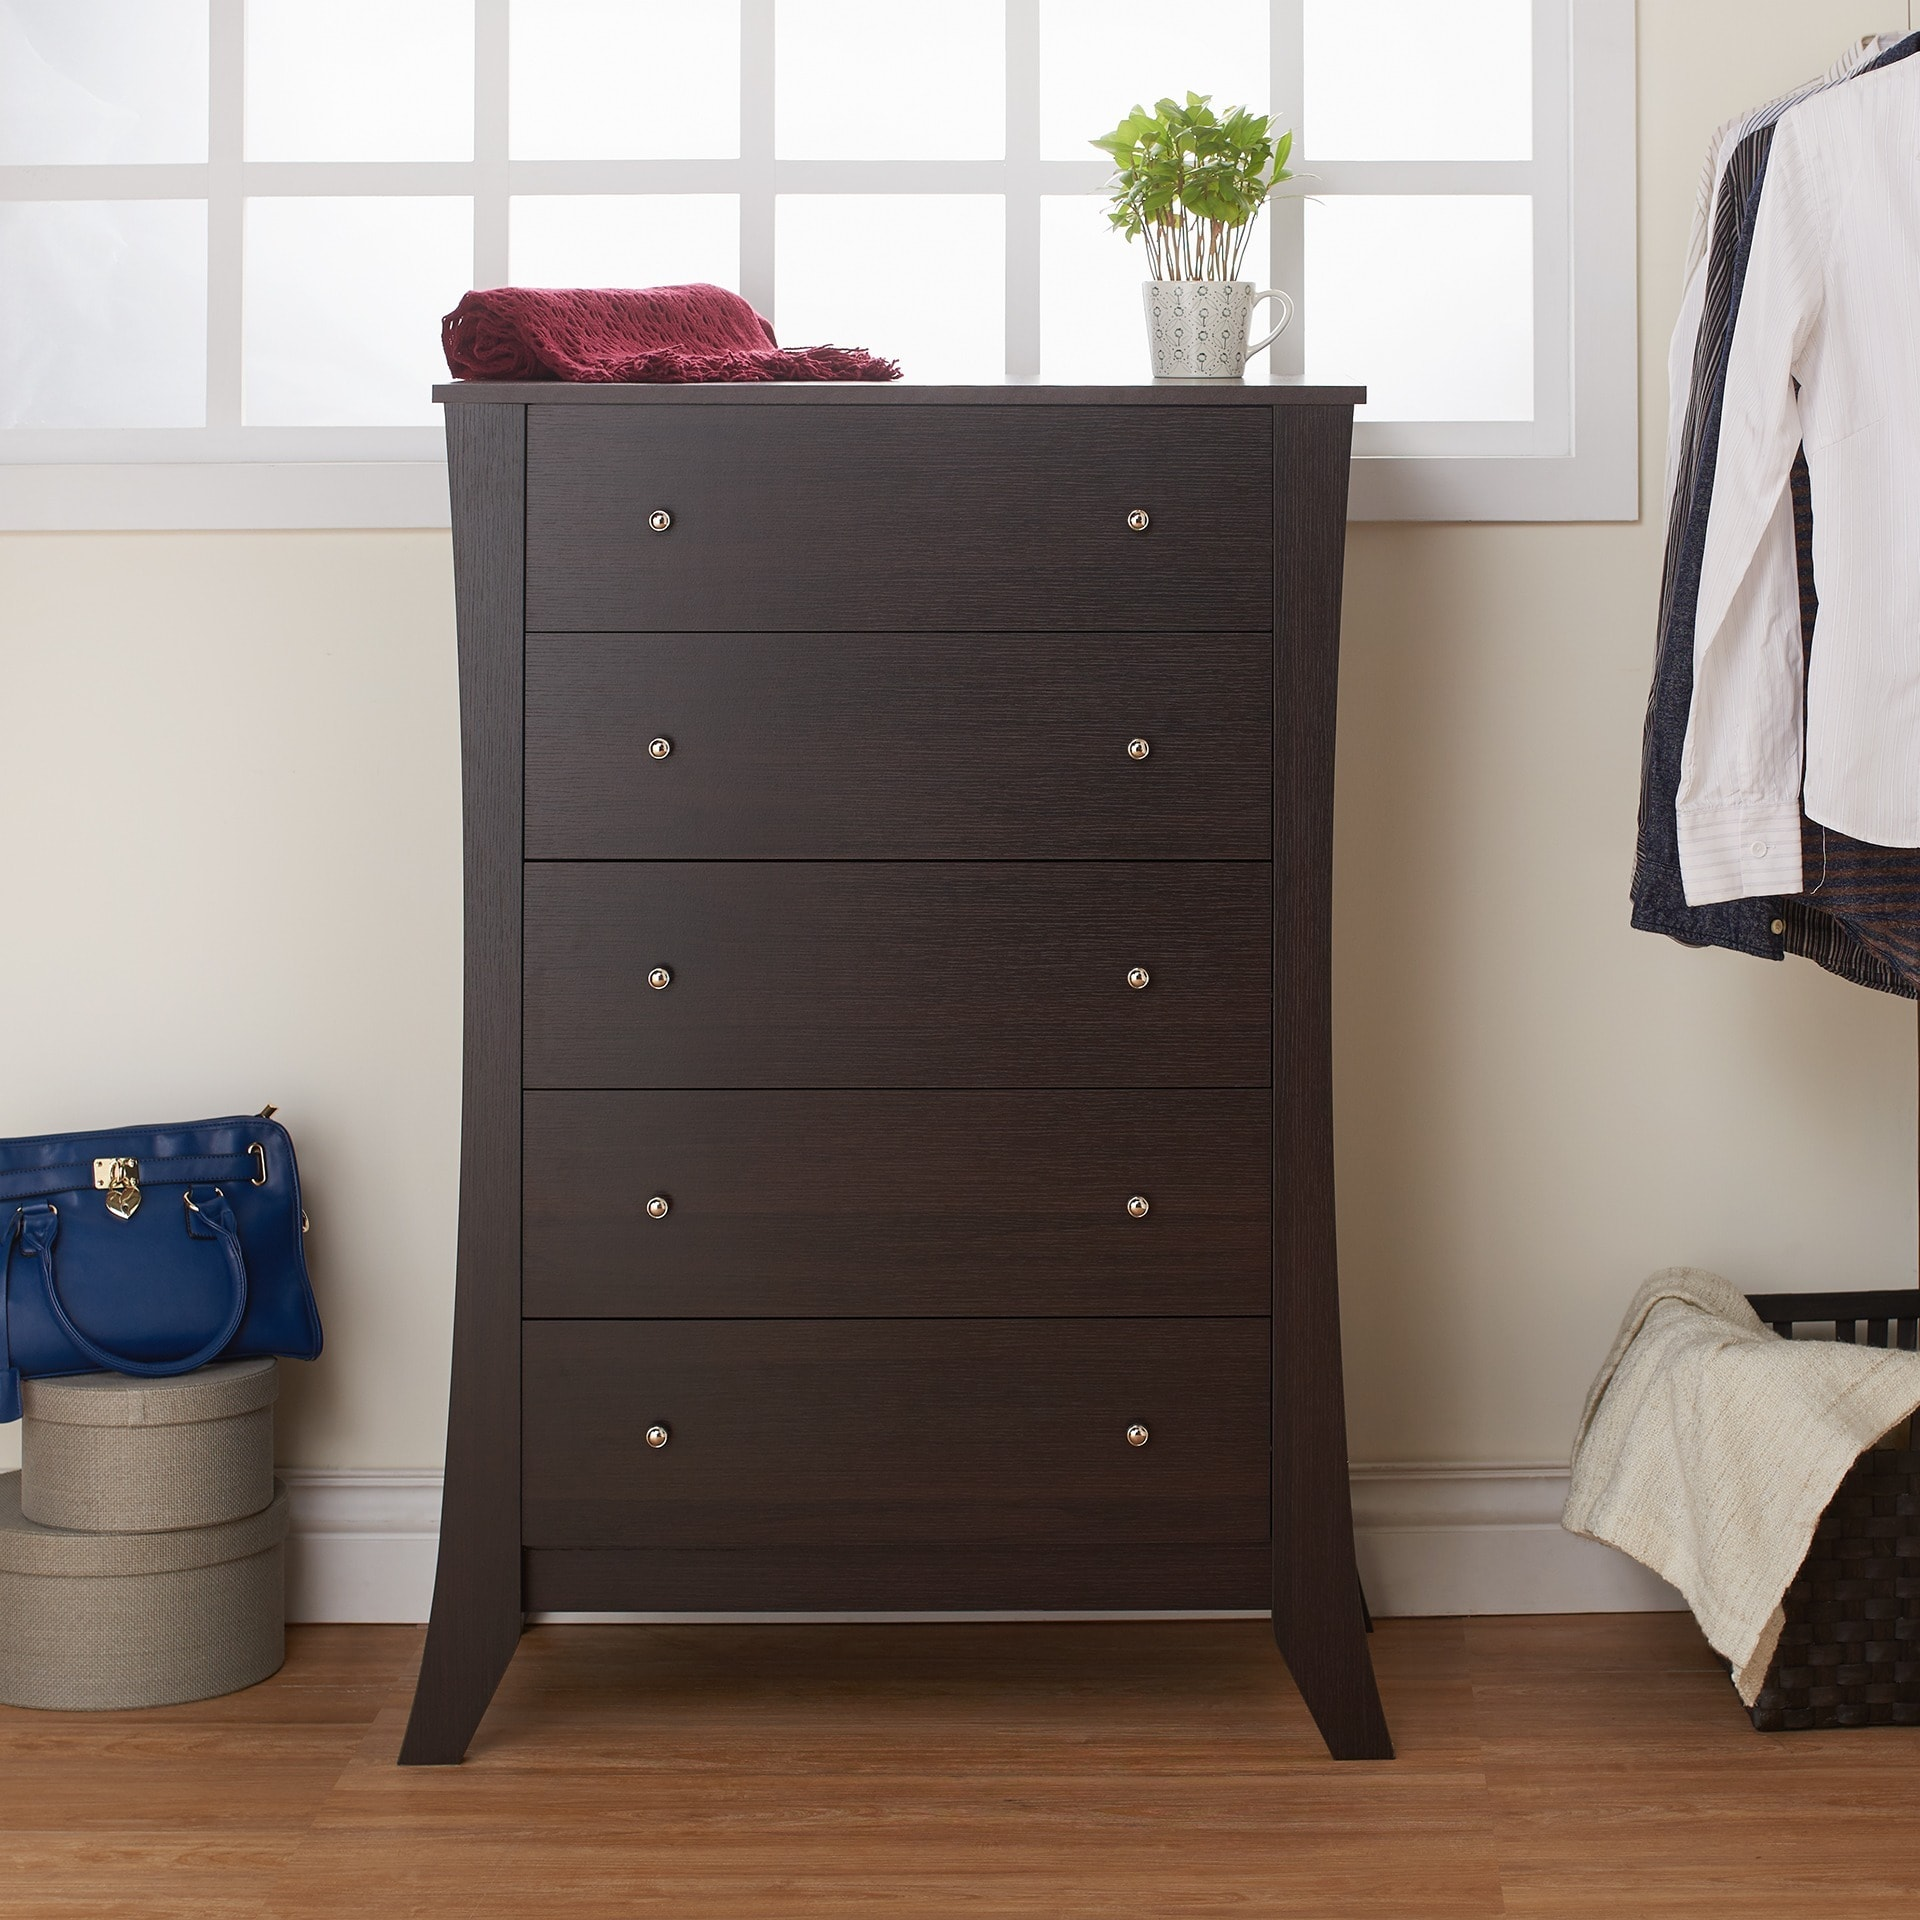 7c2e3184c83d Buy Dressers   Chests Online at Overstock